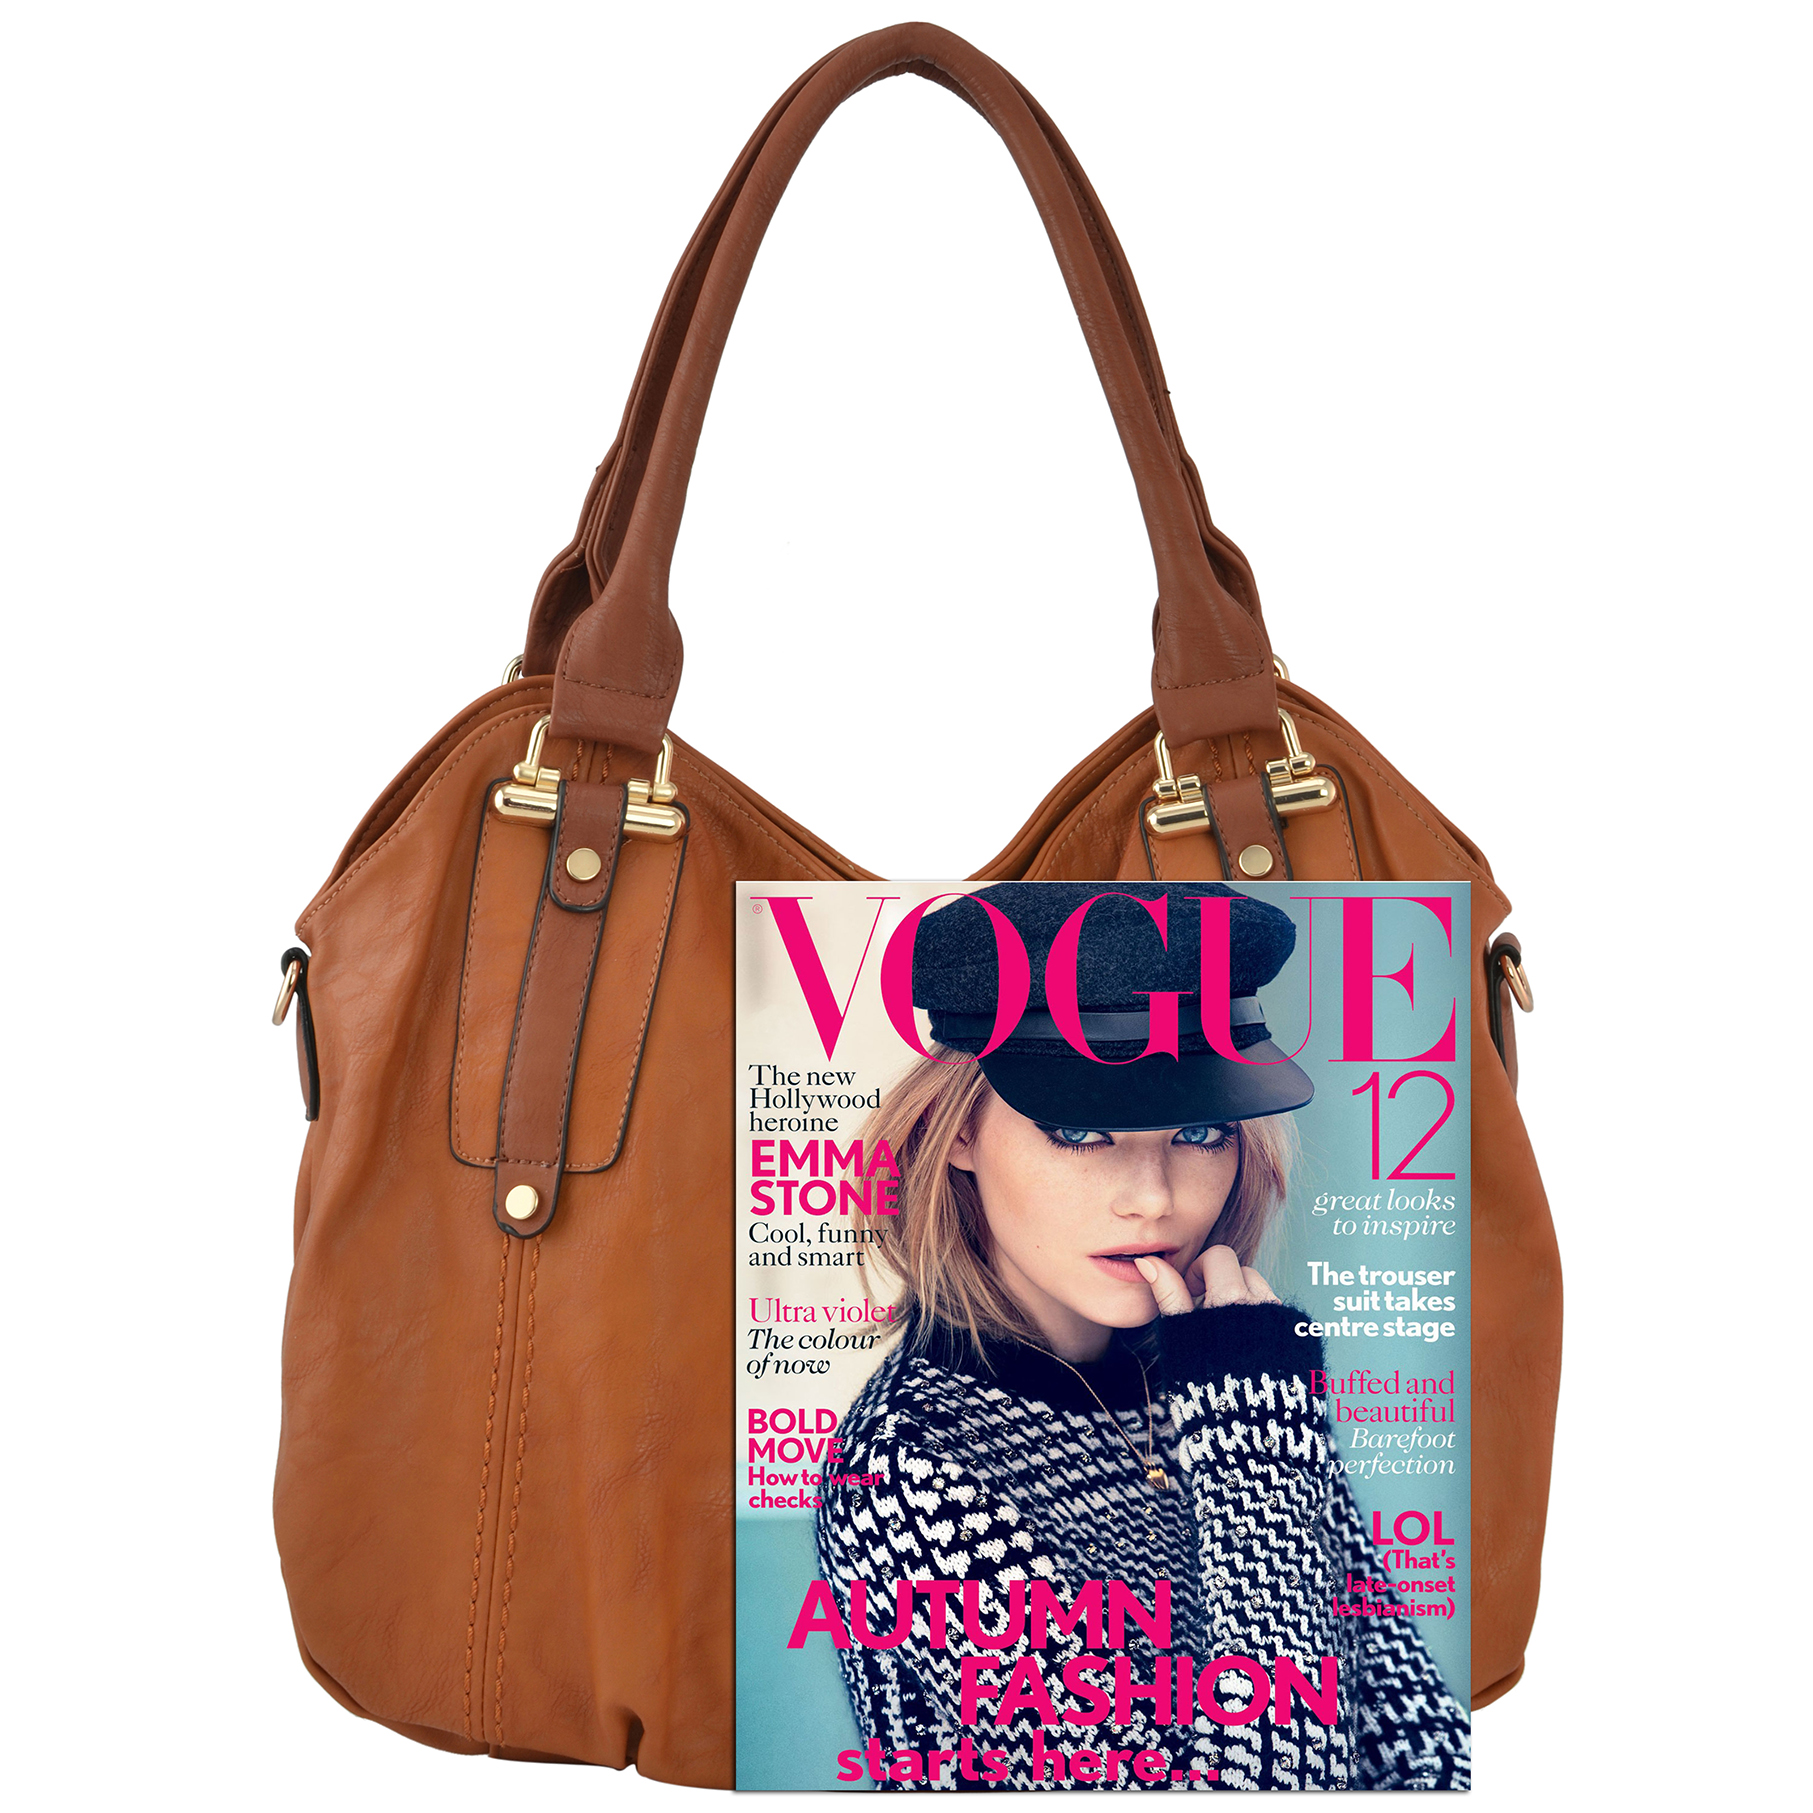 mg-collection-mimi-office-tote-style-handbag-jsh-yd-1225br-5.jpg